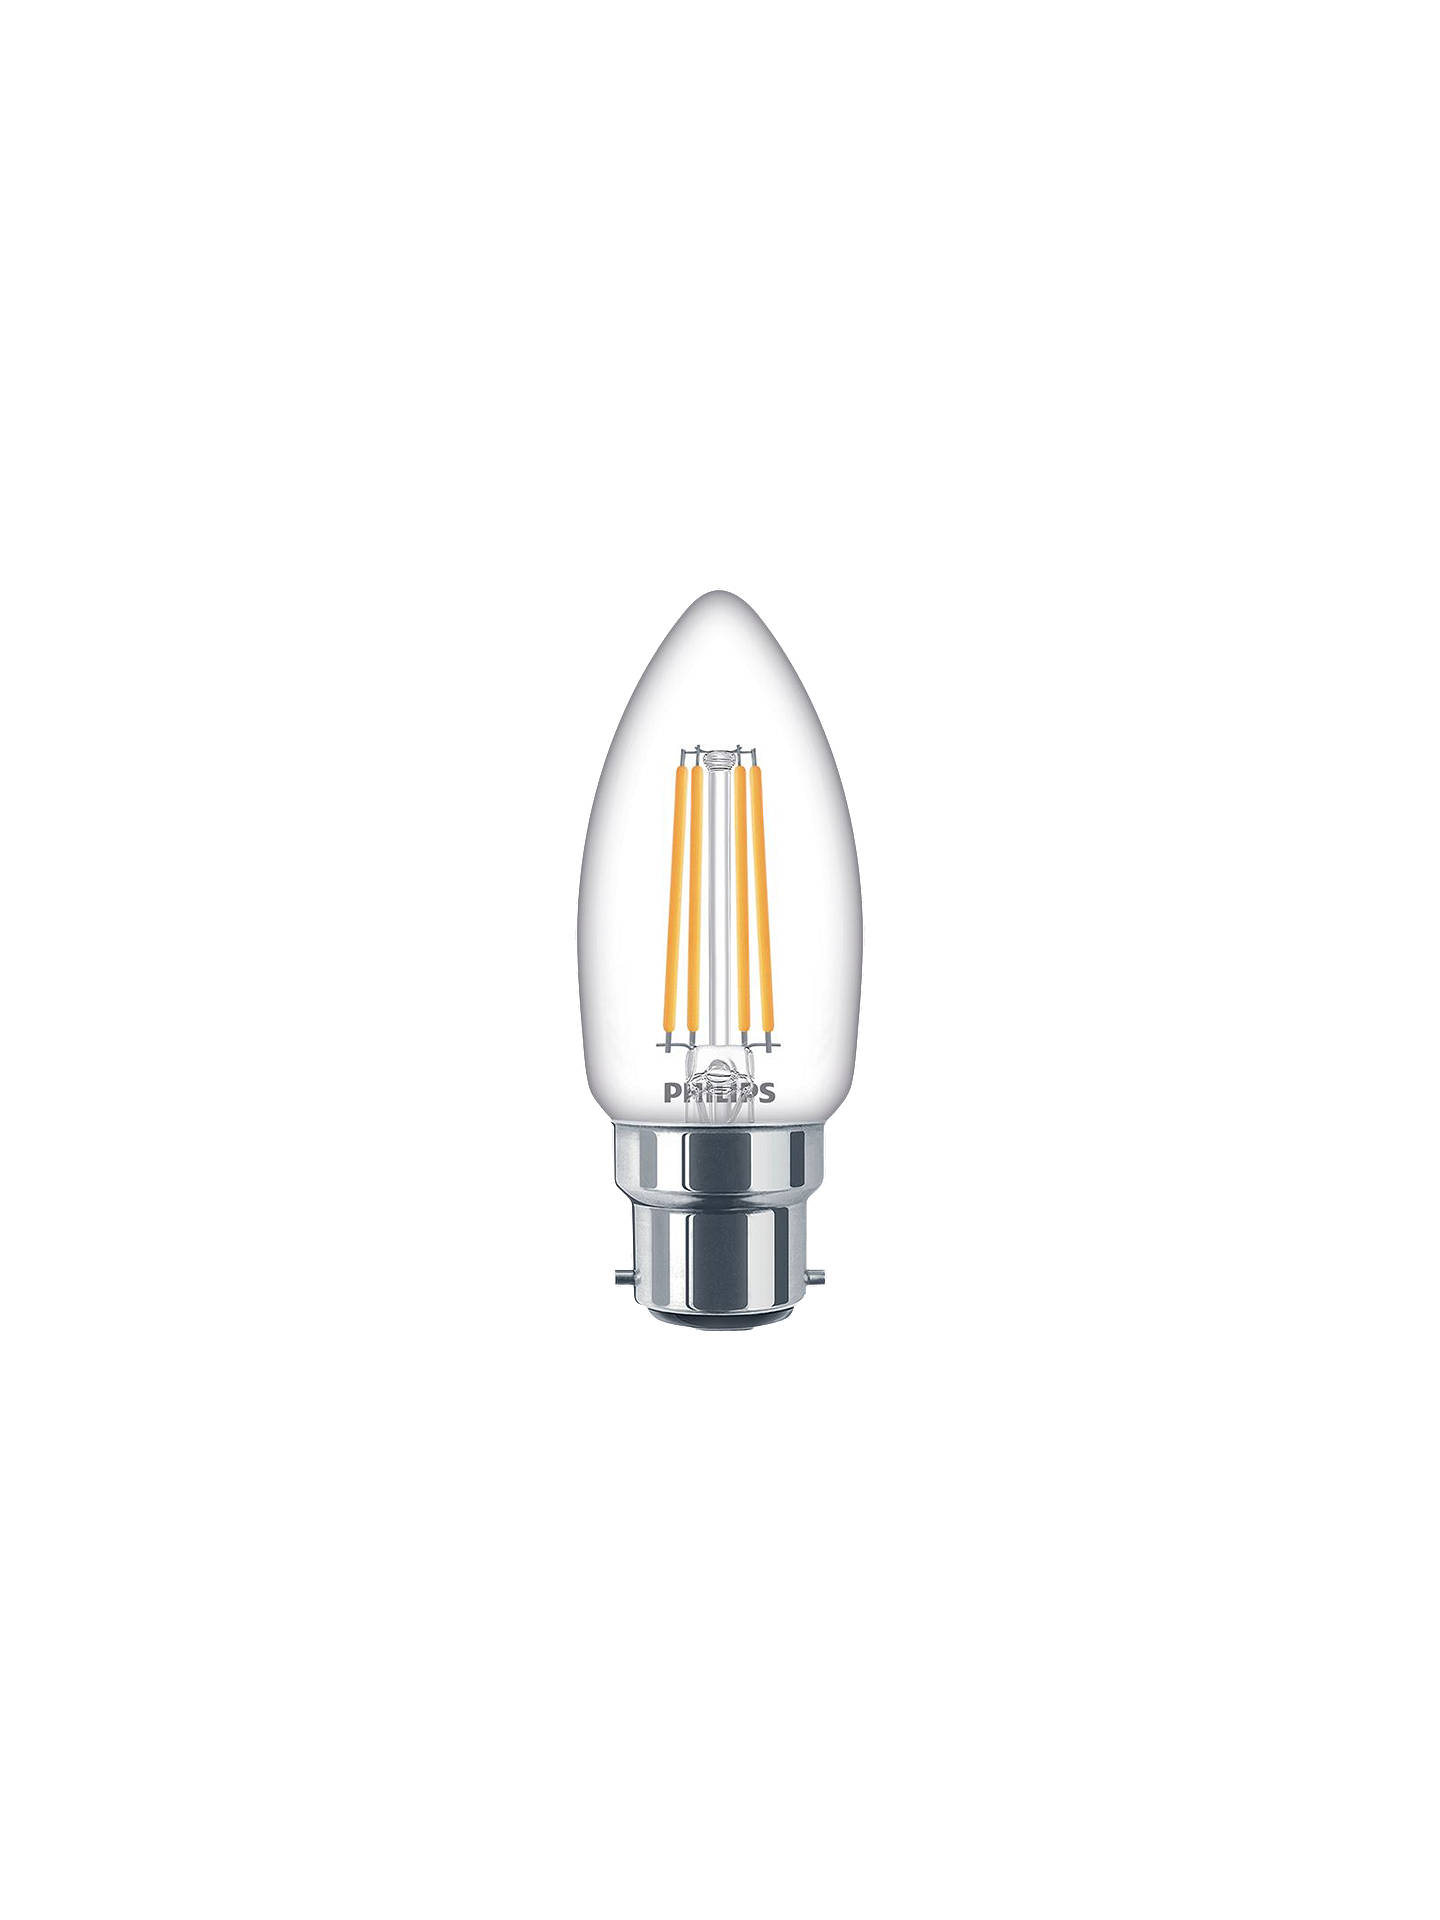 B22 BC Bayonet Cap Lamps 25x 40W Clear Candle Dimmable Filament Light Bulbs